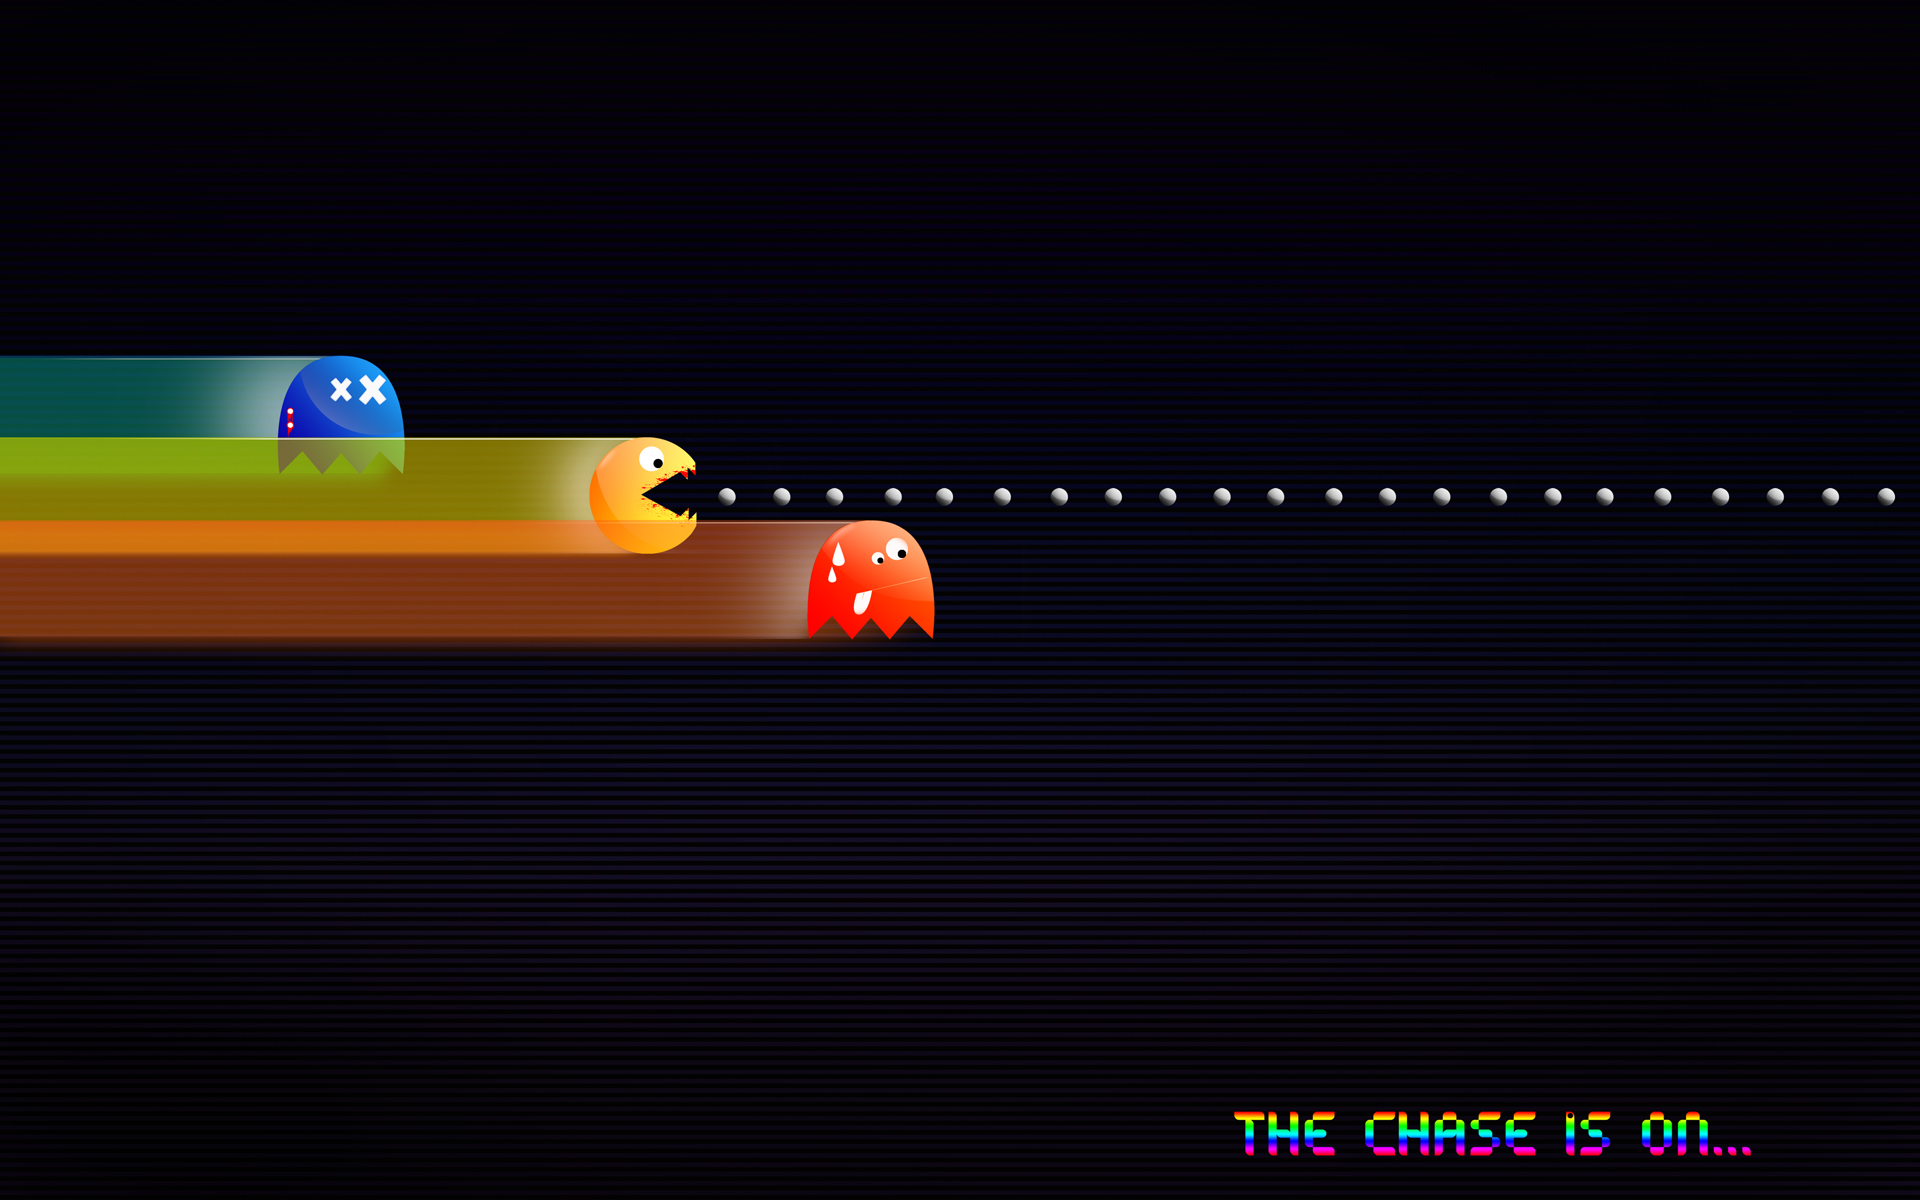 Pacman Wallpaper Iphone X Pac Man Full Hd Wallpaper And Background 1920x1200 Id